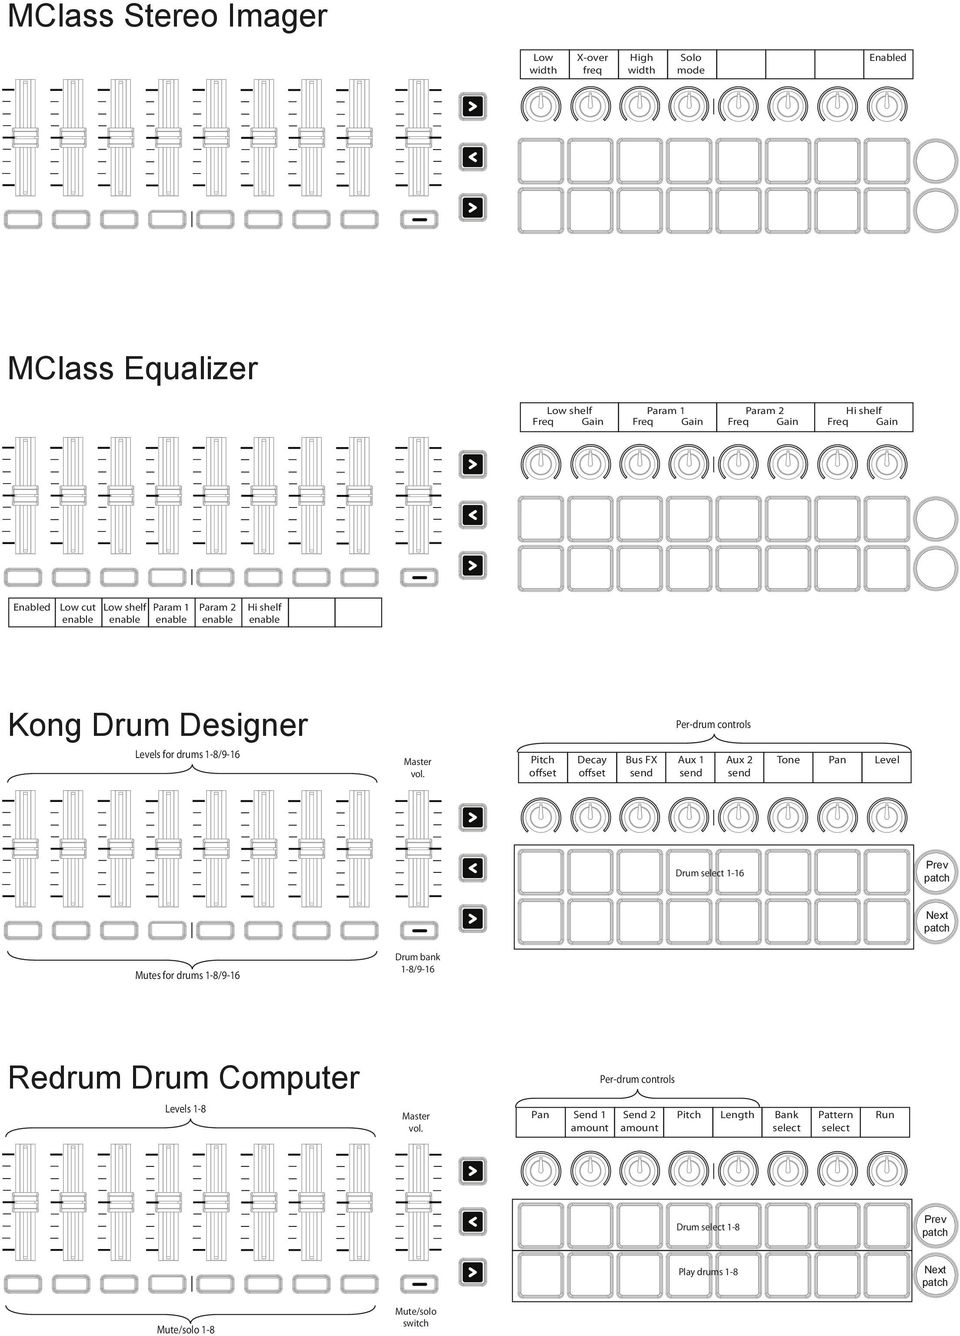 send Aux 2 send Tone Pan Level Drum select 1-16 Mutes for drums 1-8/9-16 Drum bank 1-8/9-16 Redrum Drum Computer Levels 1-8